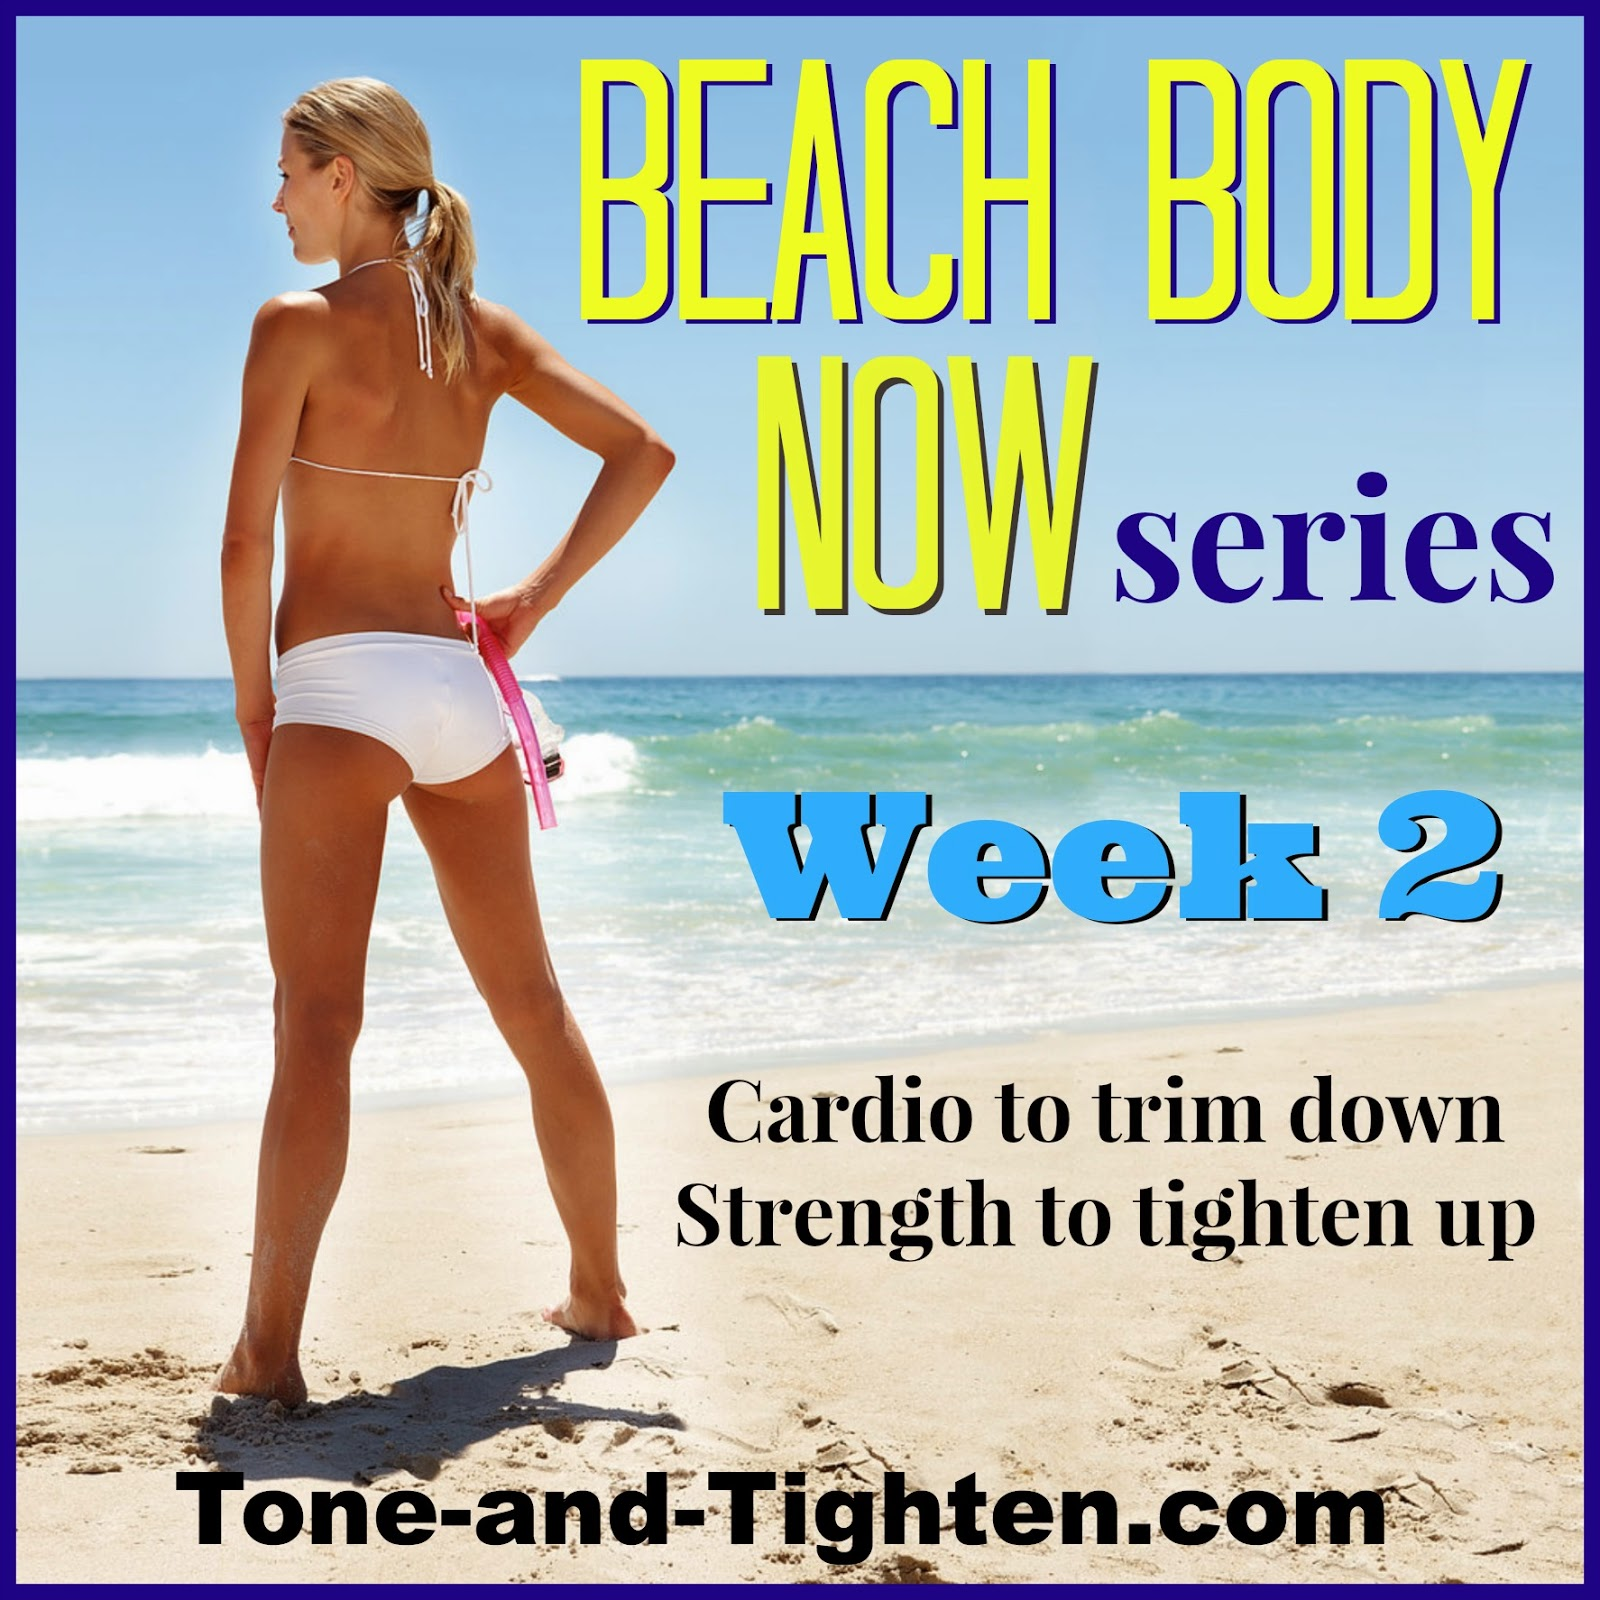 http://tone-and-tighten.com/2014/04/beach-body-now-week-2-workout-series-to-get-you-beach-ready.html